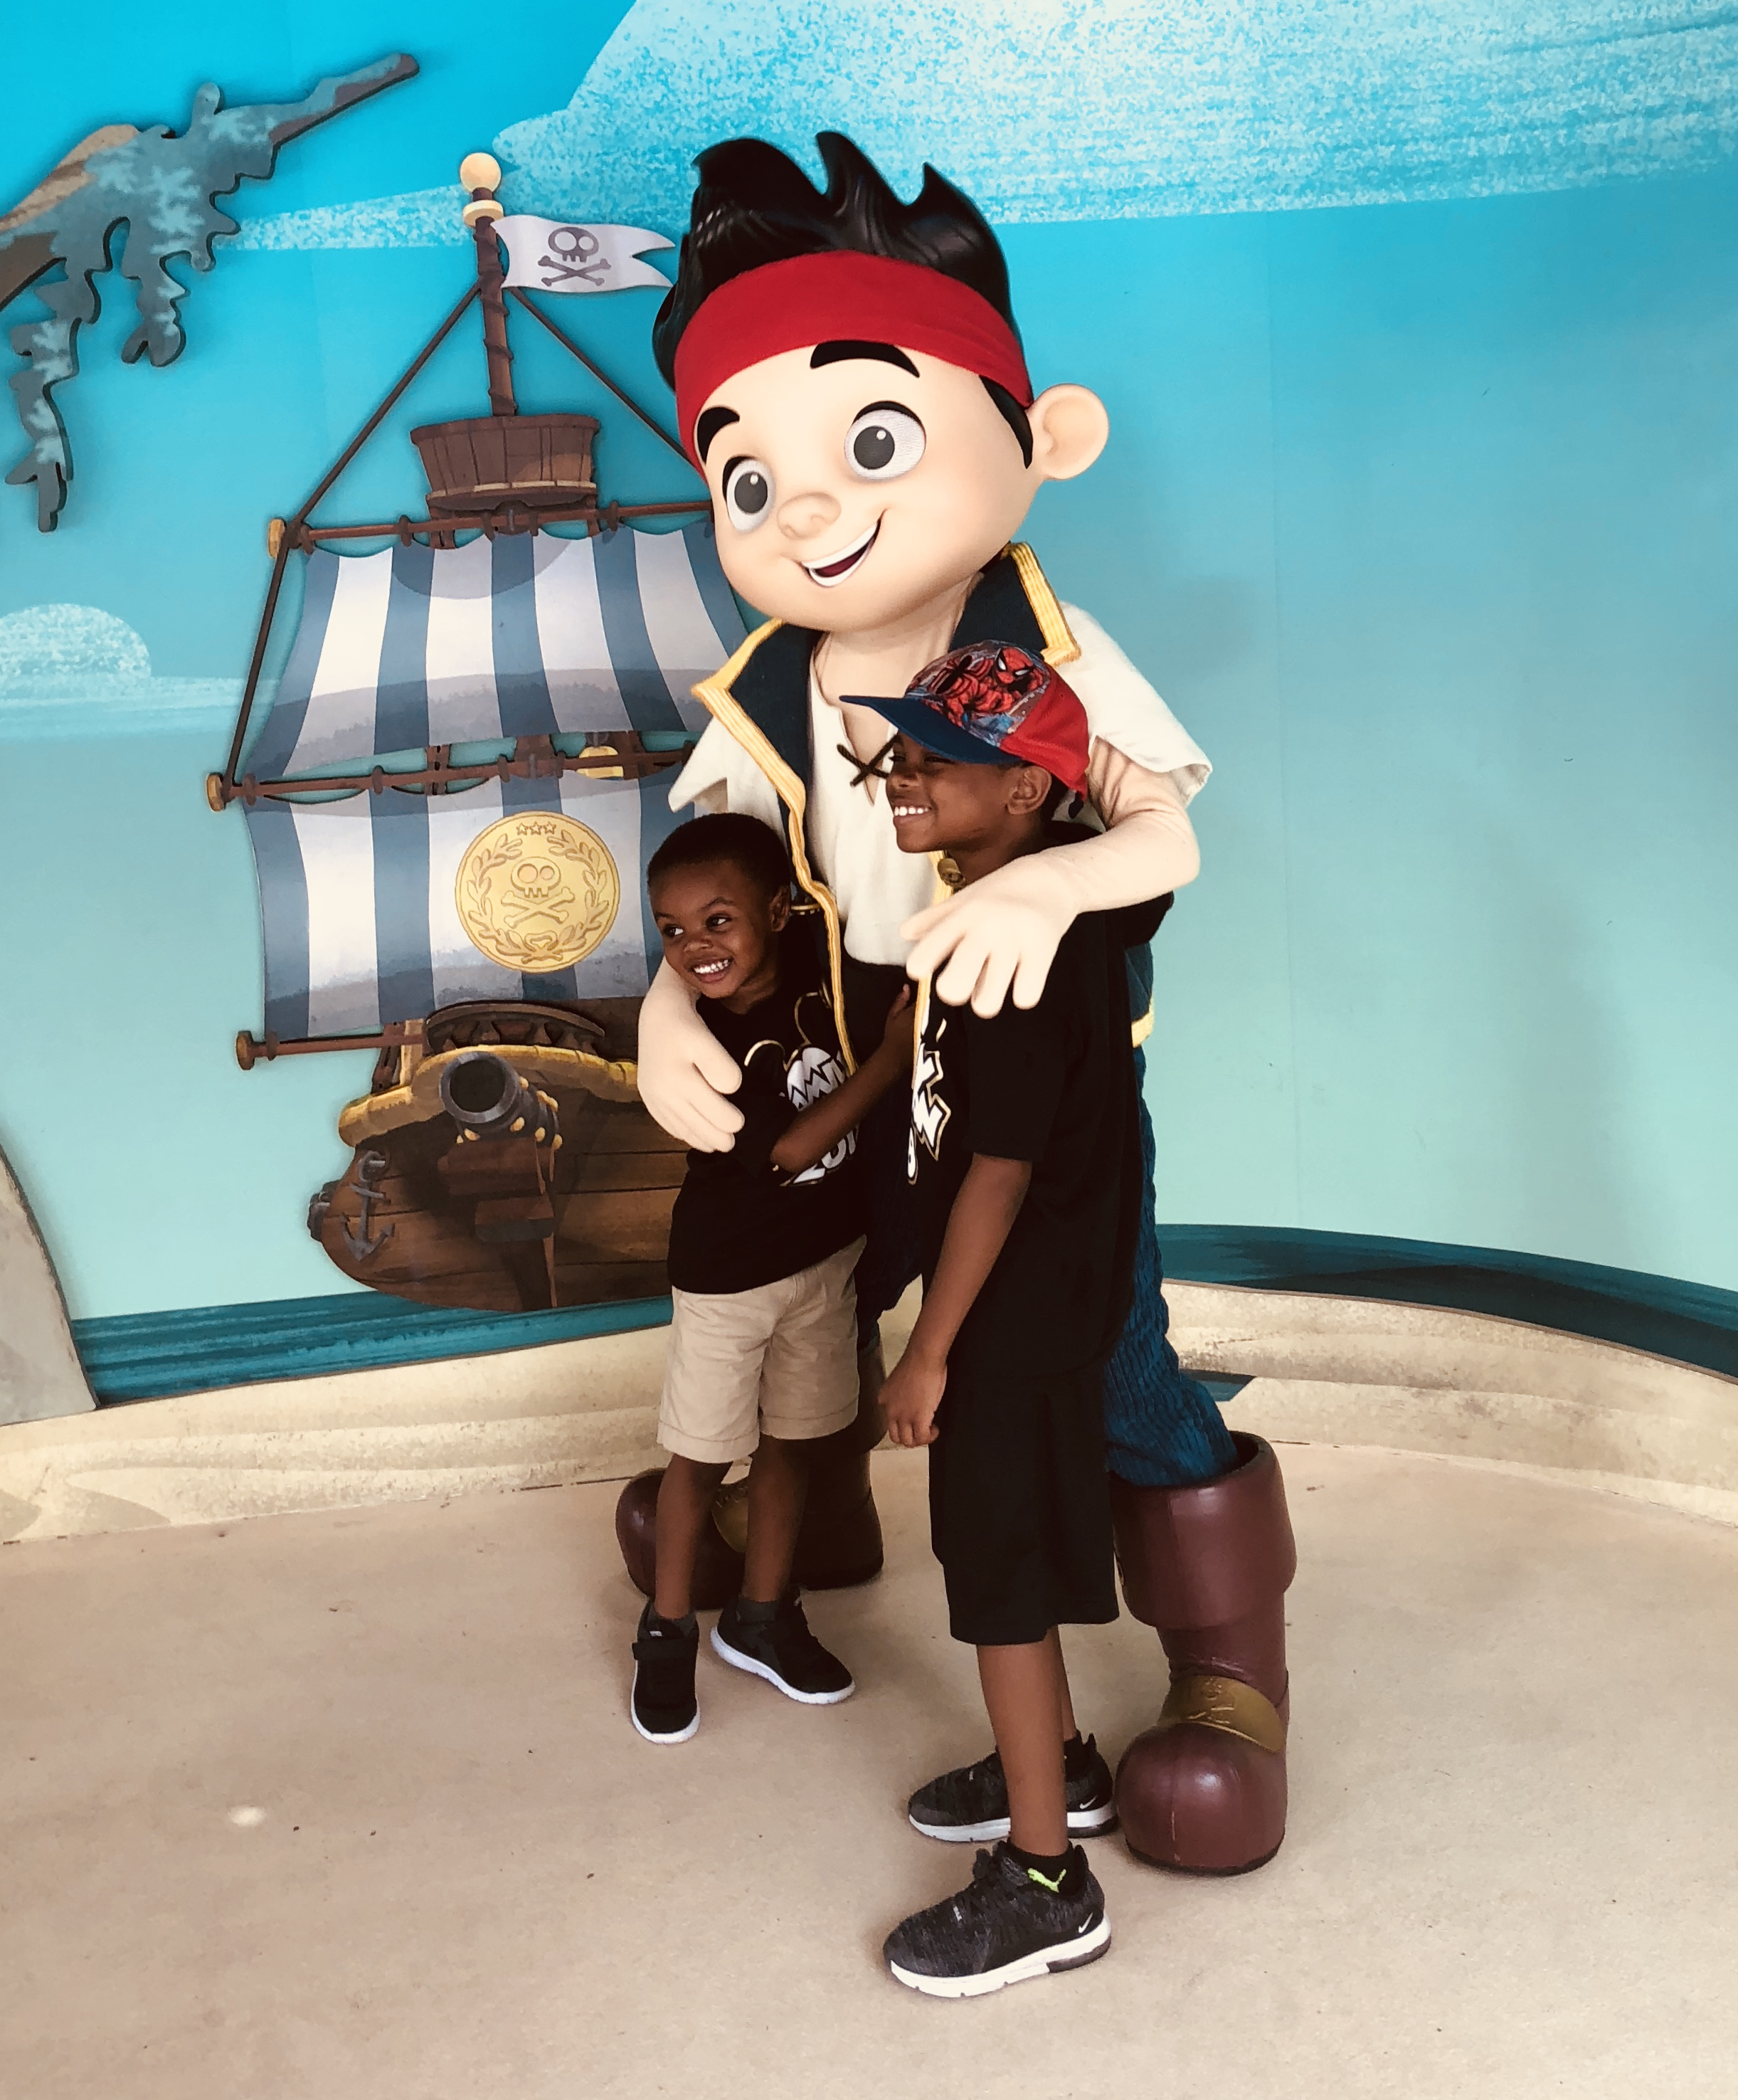 Roman and Zion with the Neverland Pirates